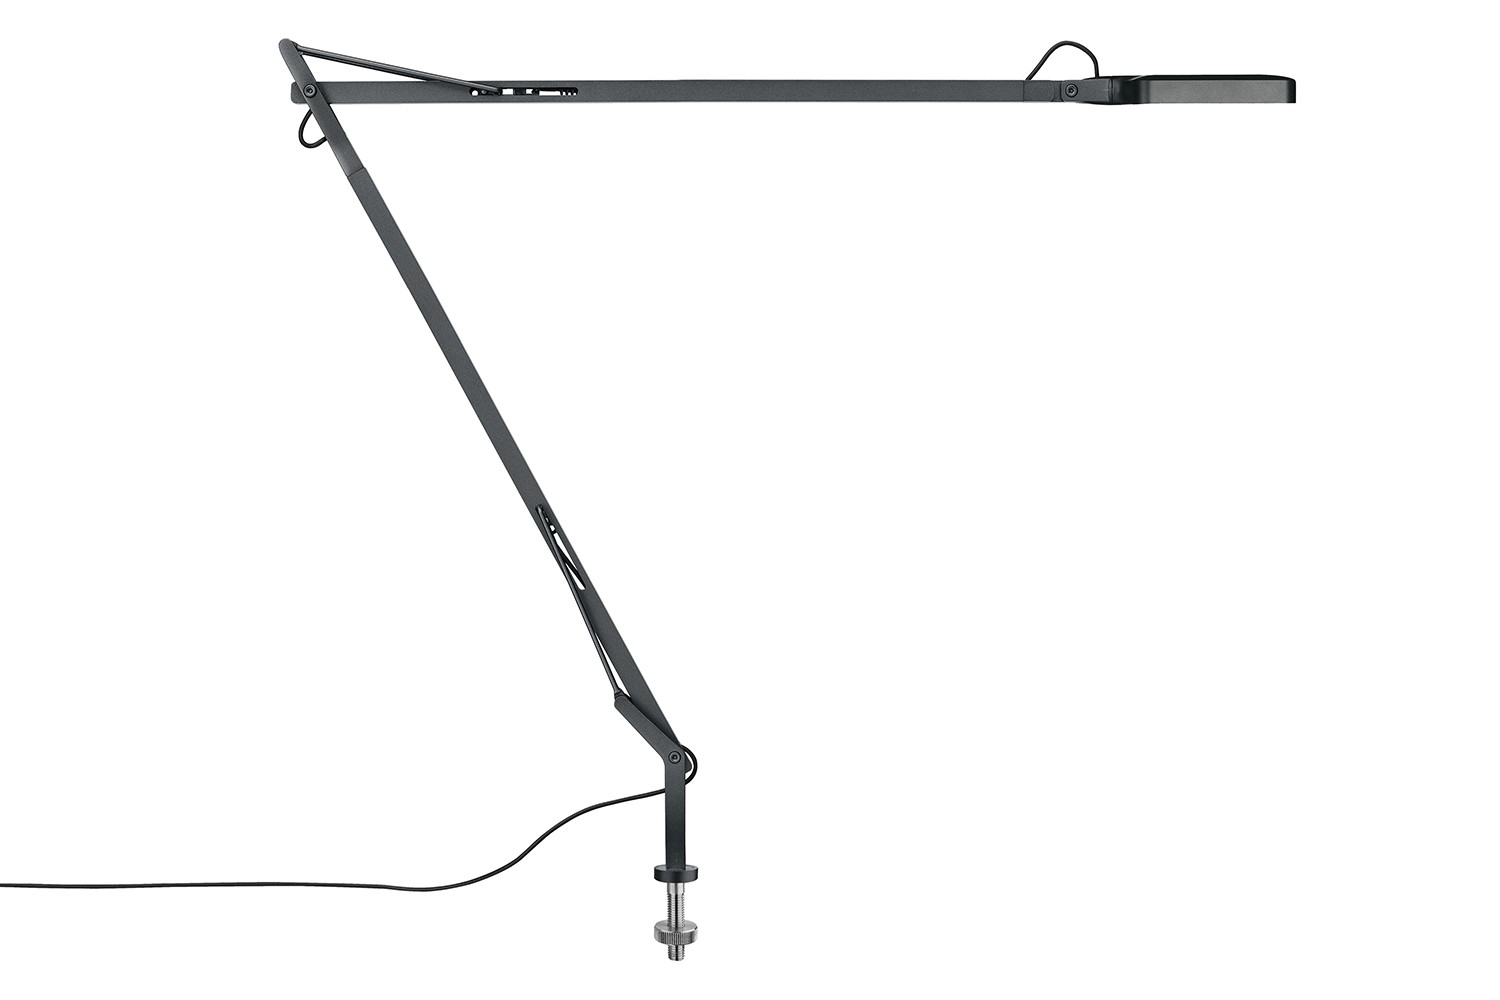 Kelvin Desk-Mounted Lamp with Visible Cable Anthracite